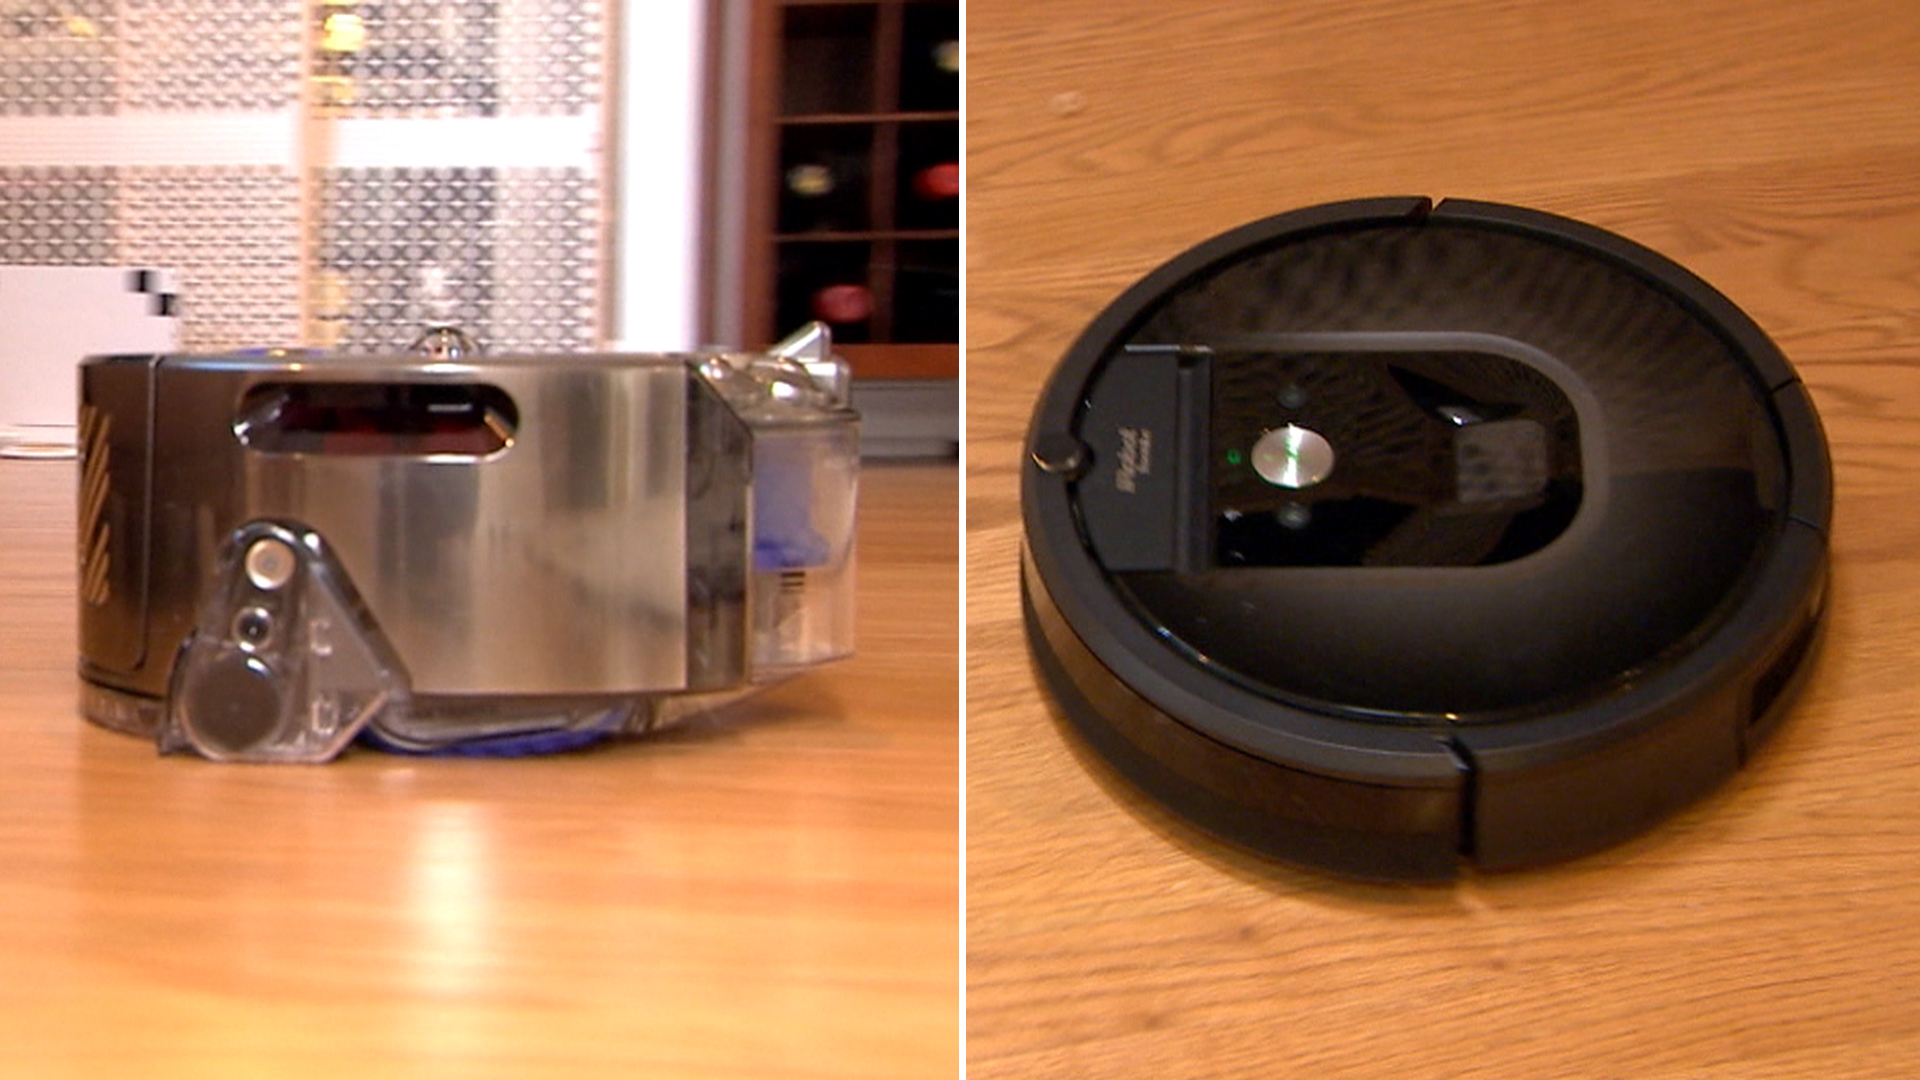 vacuum robots: do they really work as well as it looks on tv?